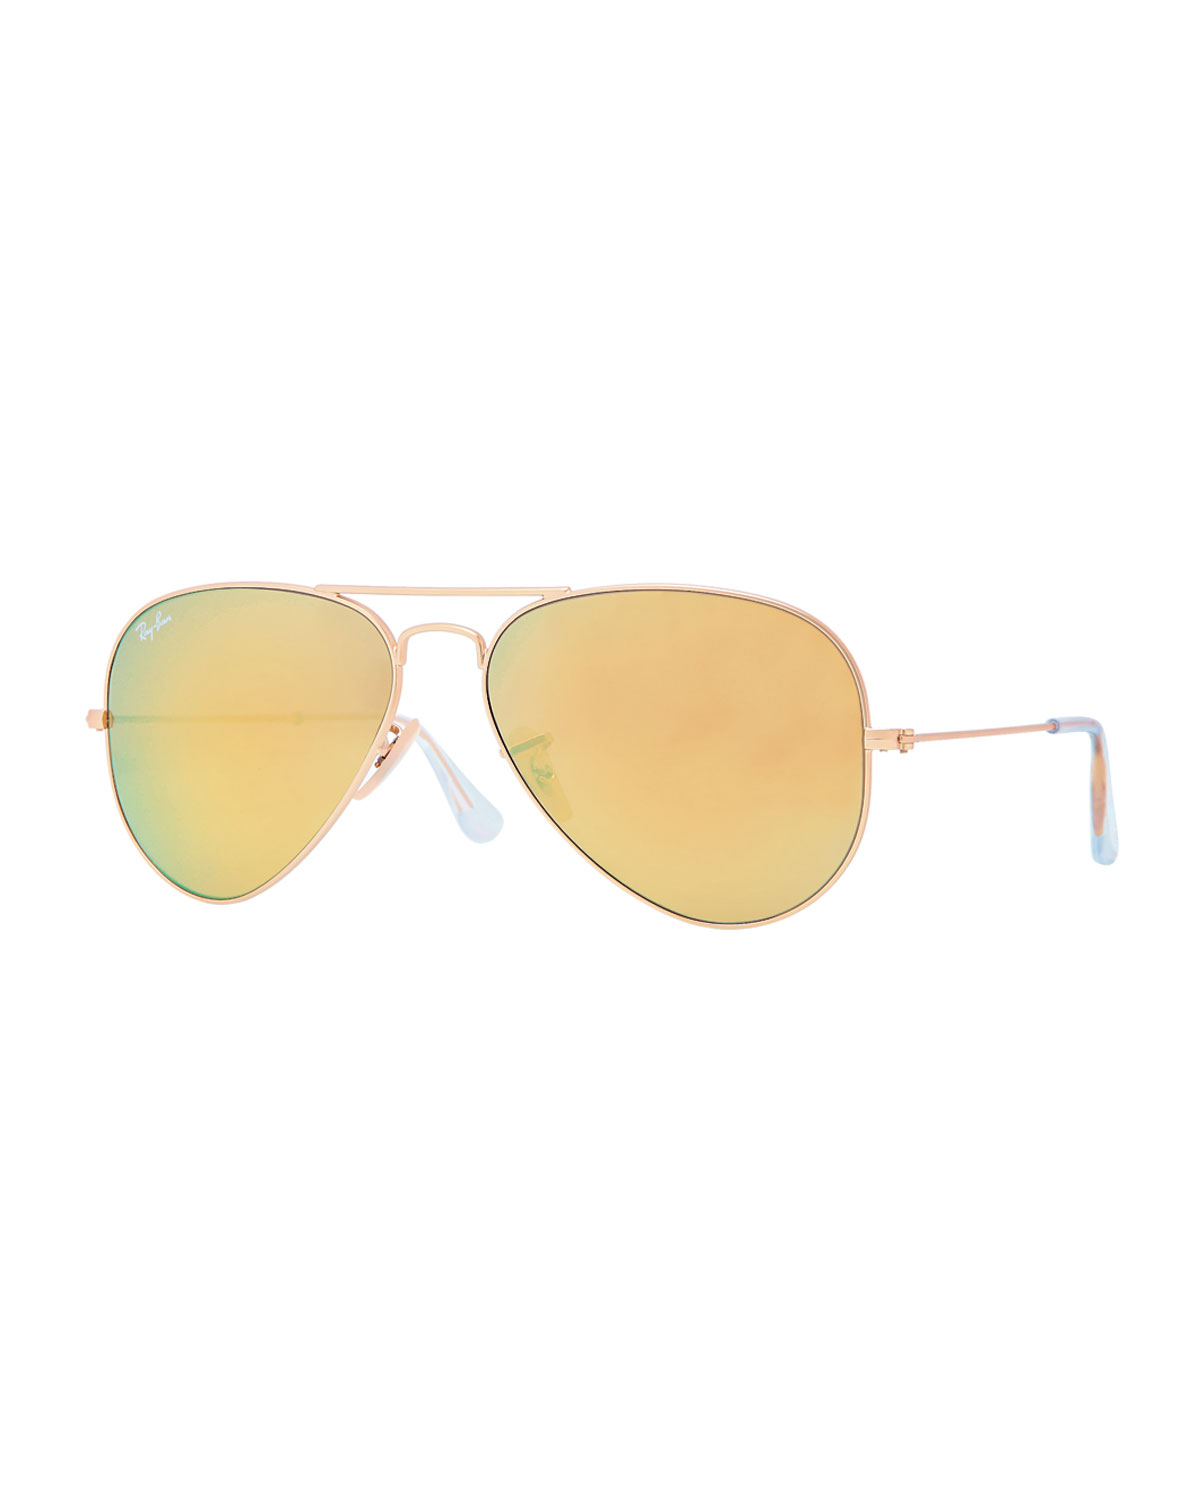 Ray Ban Gold Aviators 2017